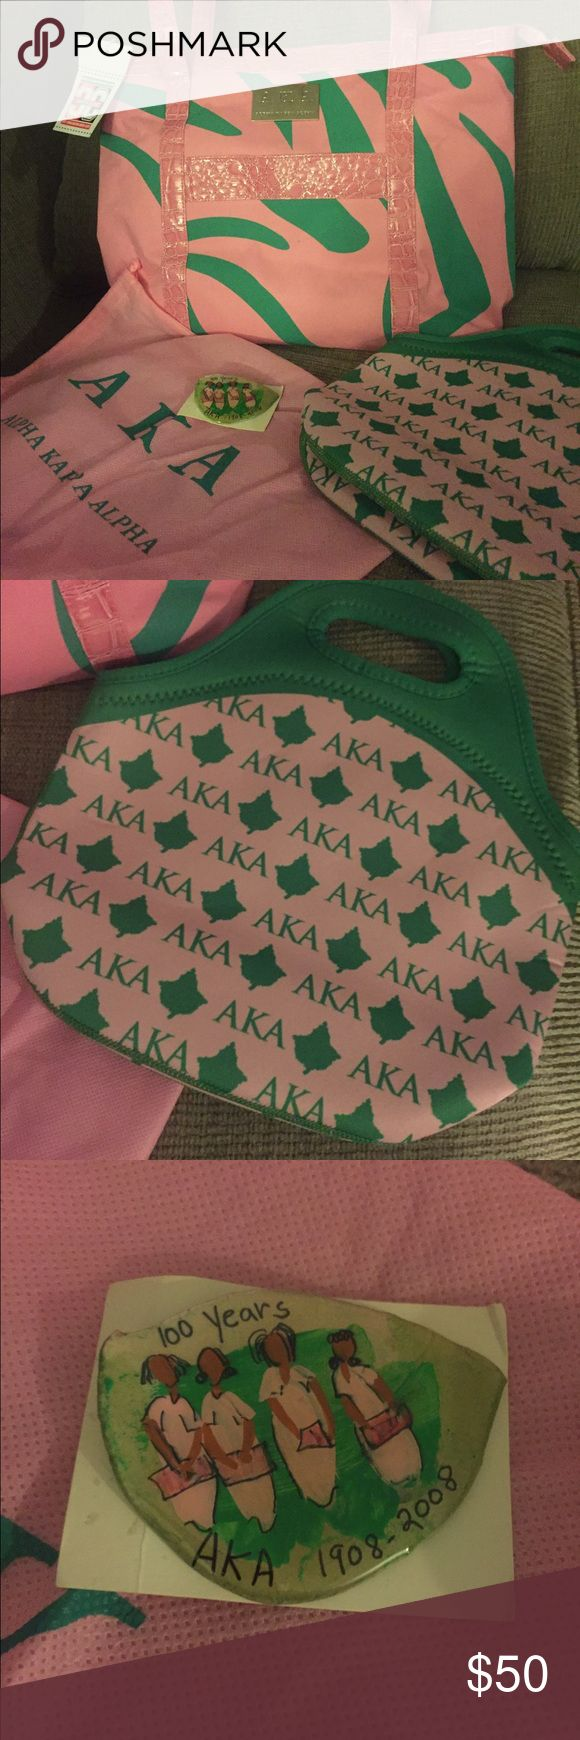 Aka sorority gift set! This pink and green all over sorority bag is delicious ! Any aka would love it for a gift . It has pockets and another bag inside of the pink bag with stylish alligator skin straps  too cute to pass it! Bags Totes